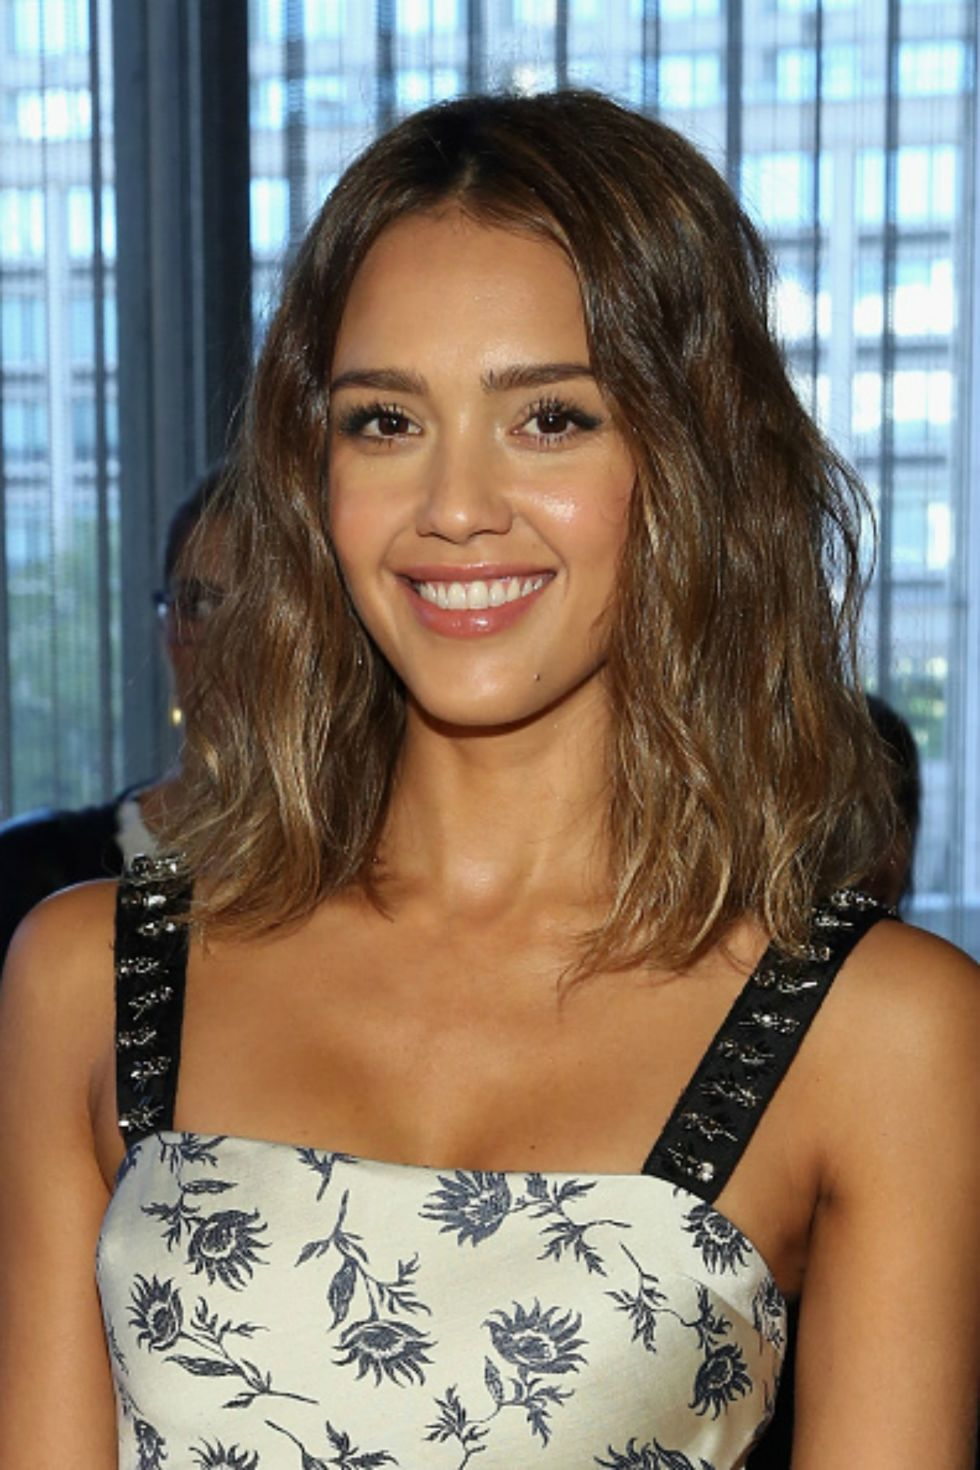 Stupendous 46 Great Medium Hairstyles Haircuts For Mid Length Hair Short Hairstyles For Black Women Fulllsitofus